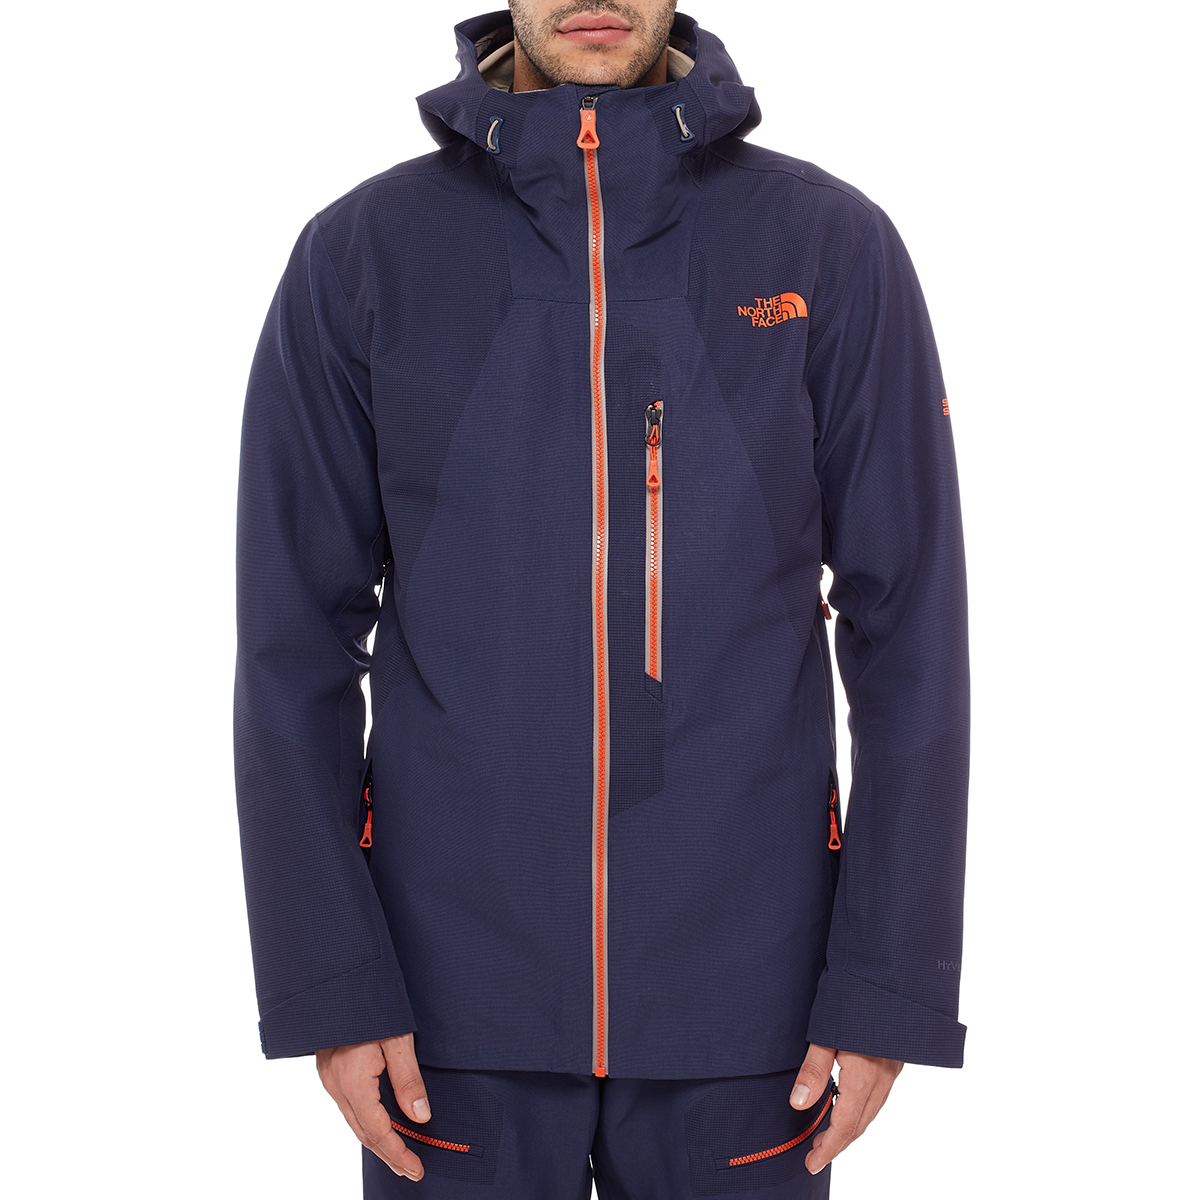 ... 2016 The North Face, FuseForm Brigandine 3L Jacket, ...